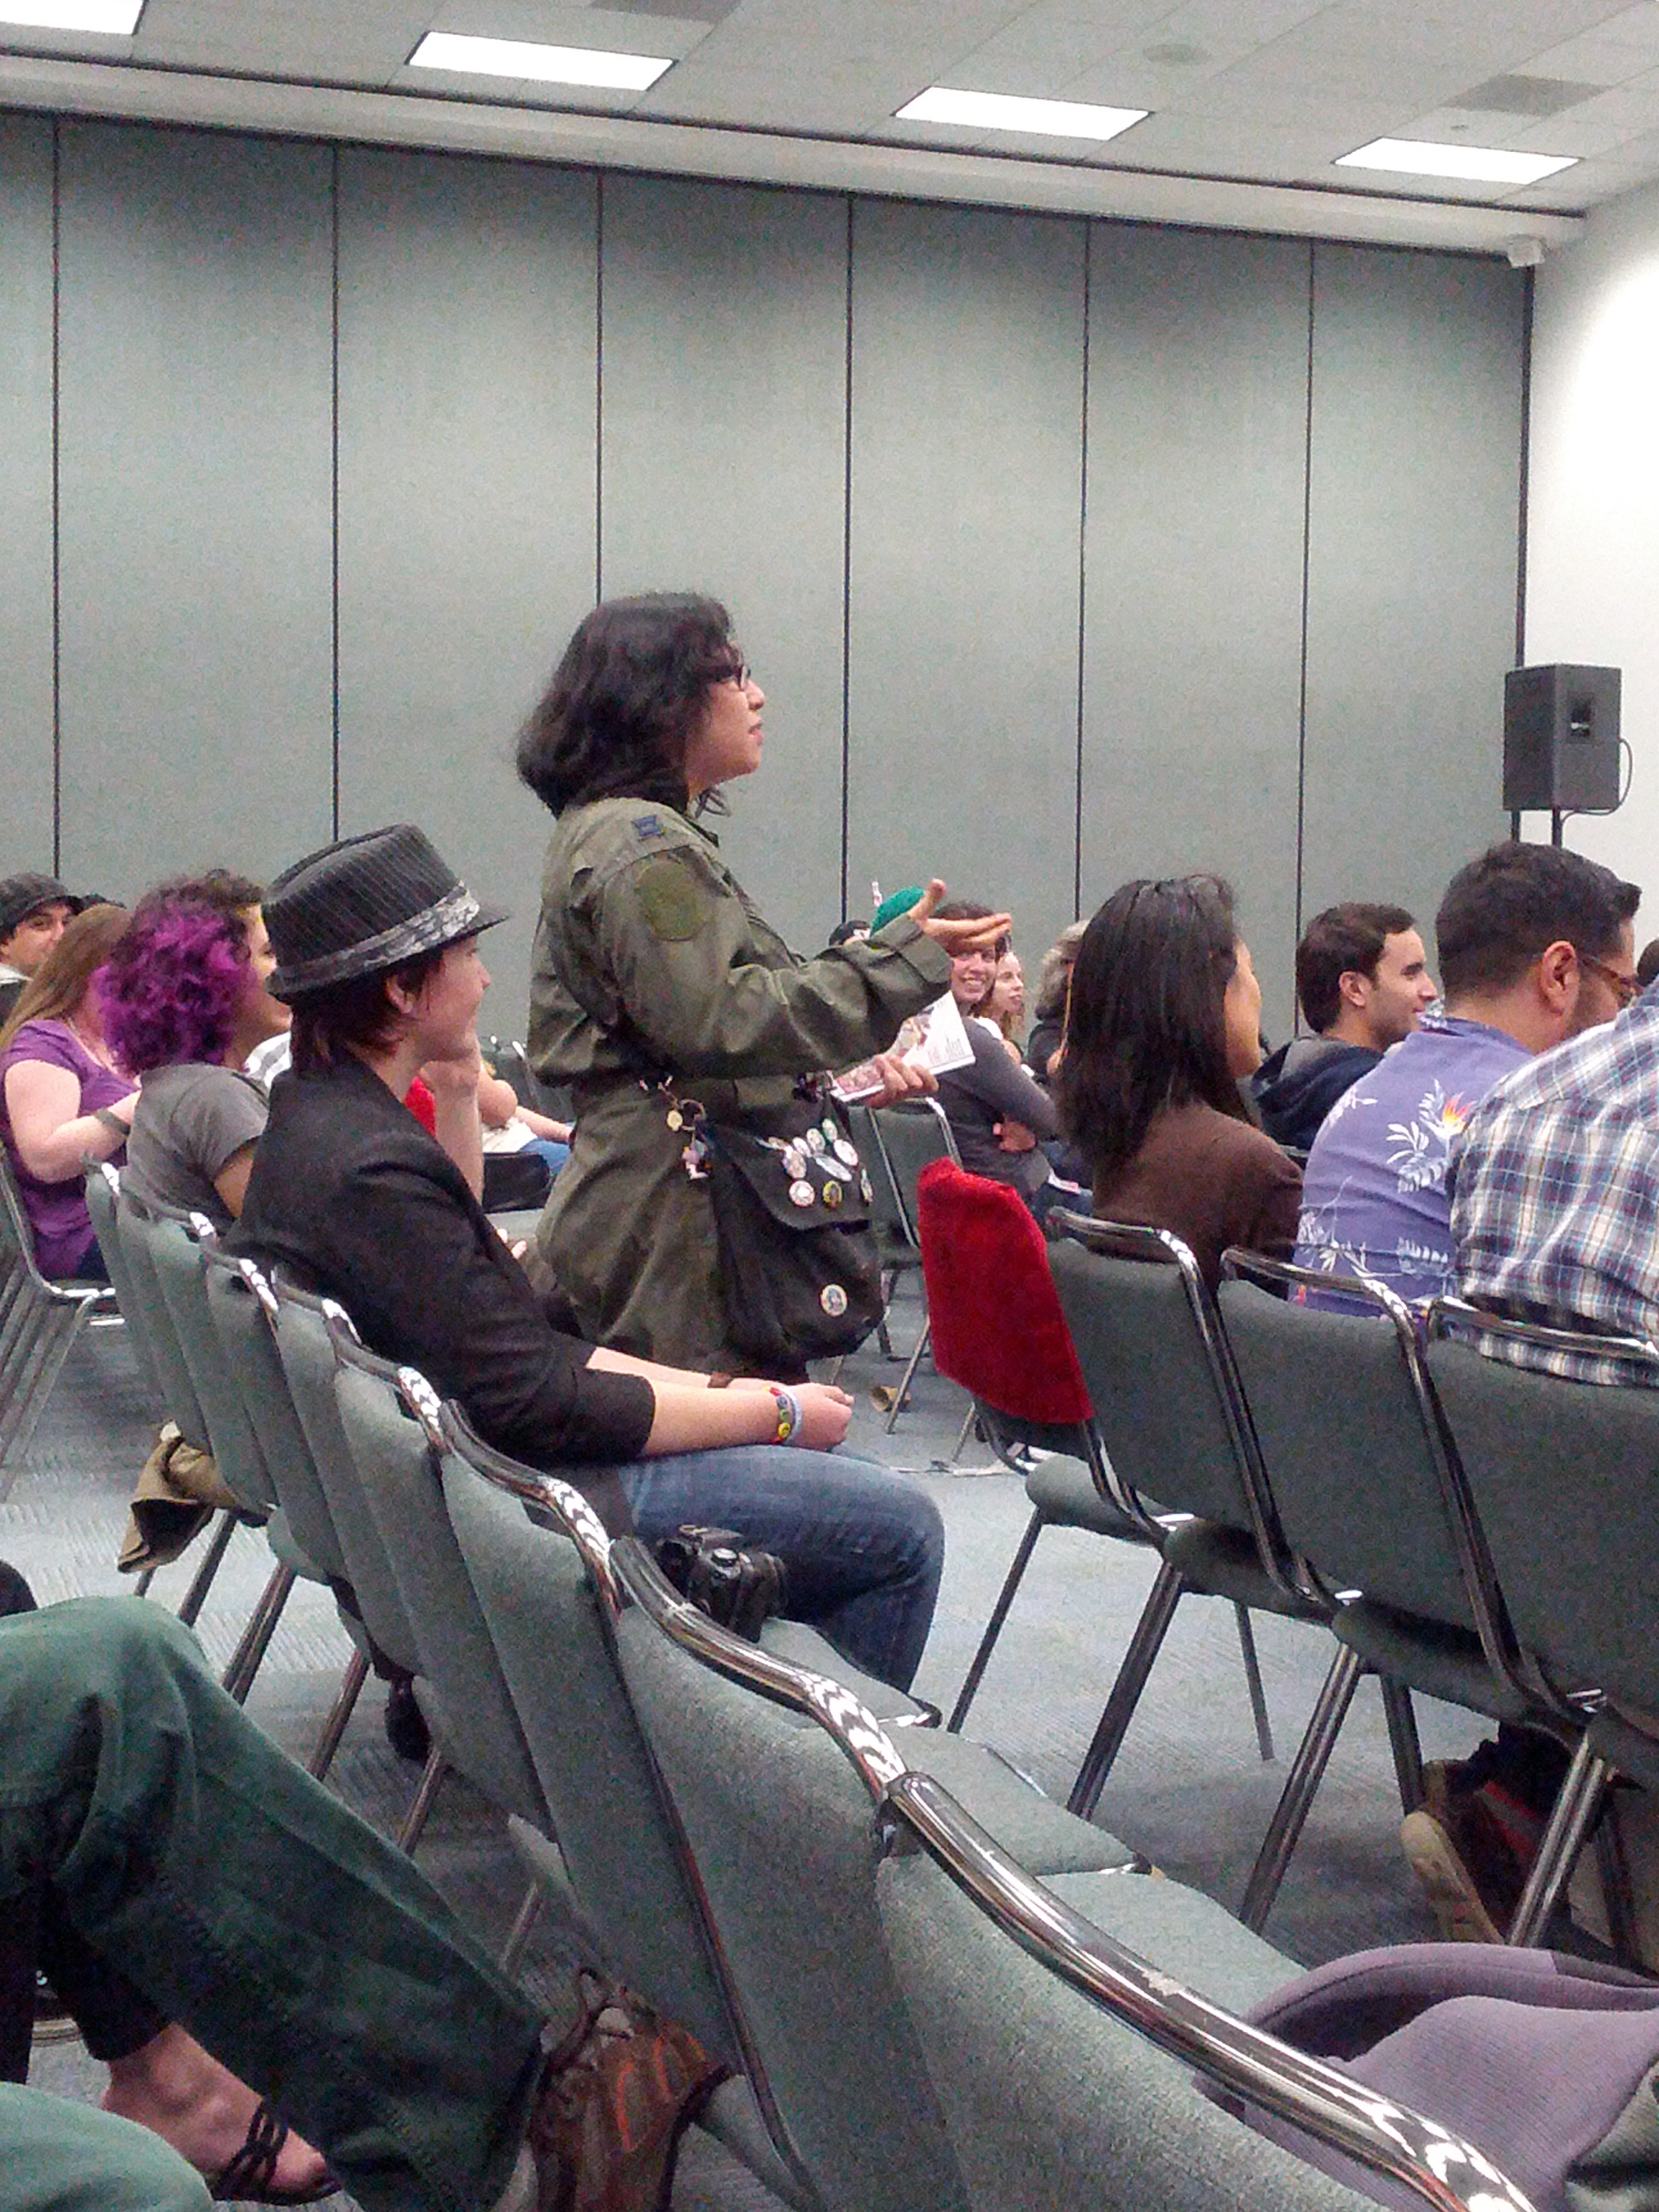 Back to Wondercon: This attendee told creators of Husbands the Series that their work inspired her to create her own transgender superhero.